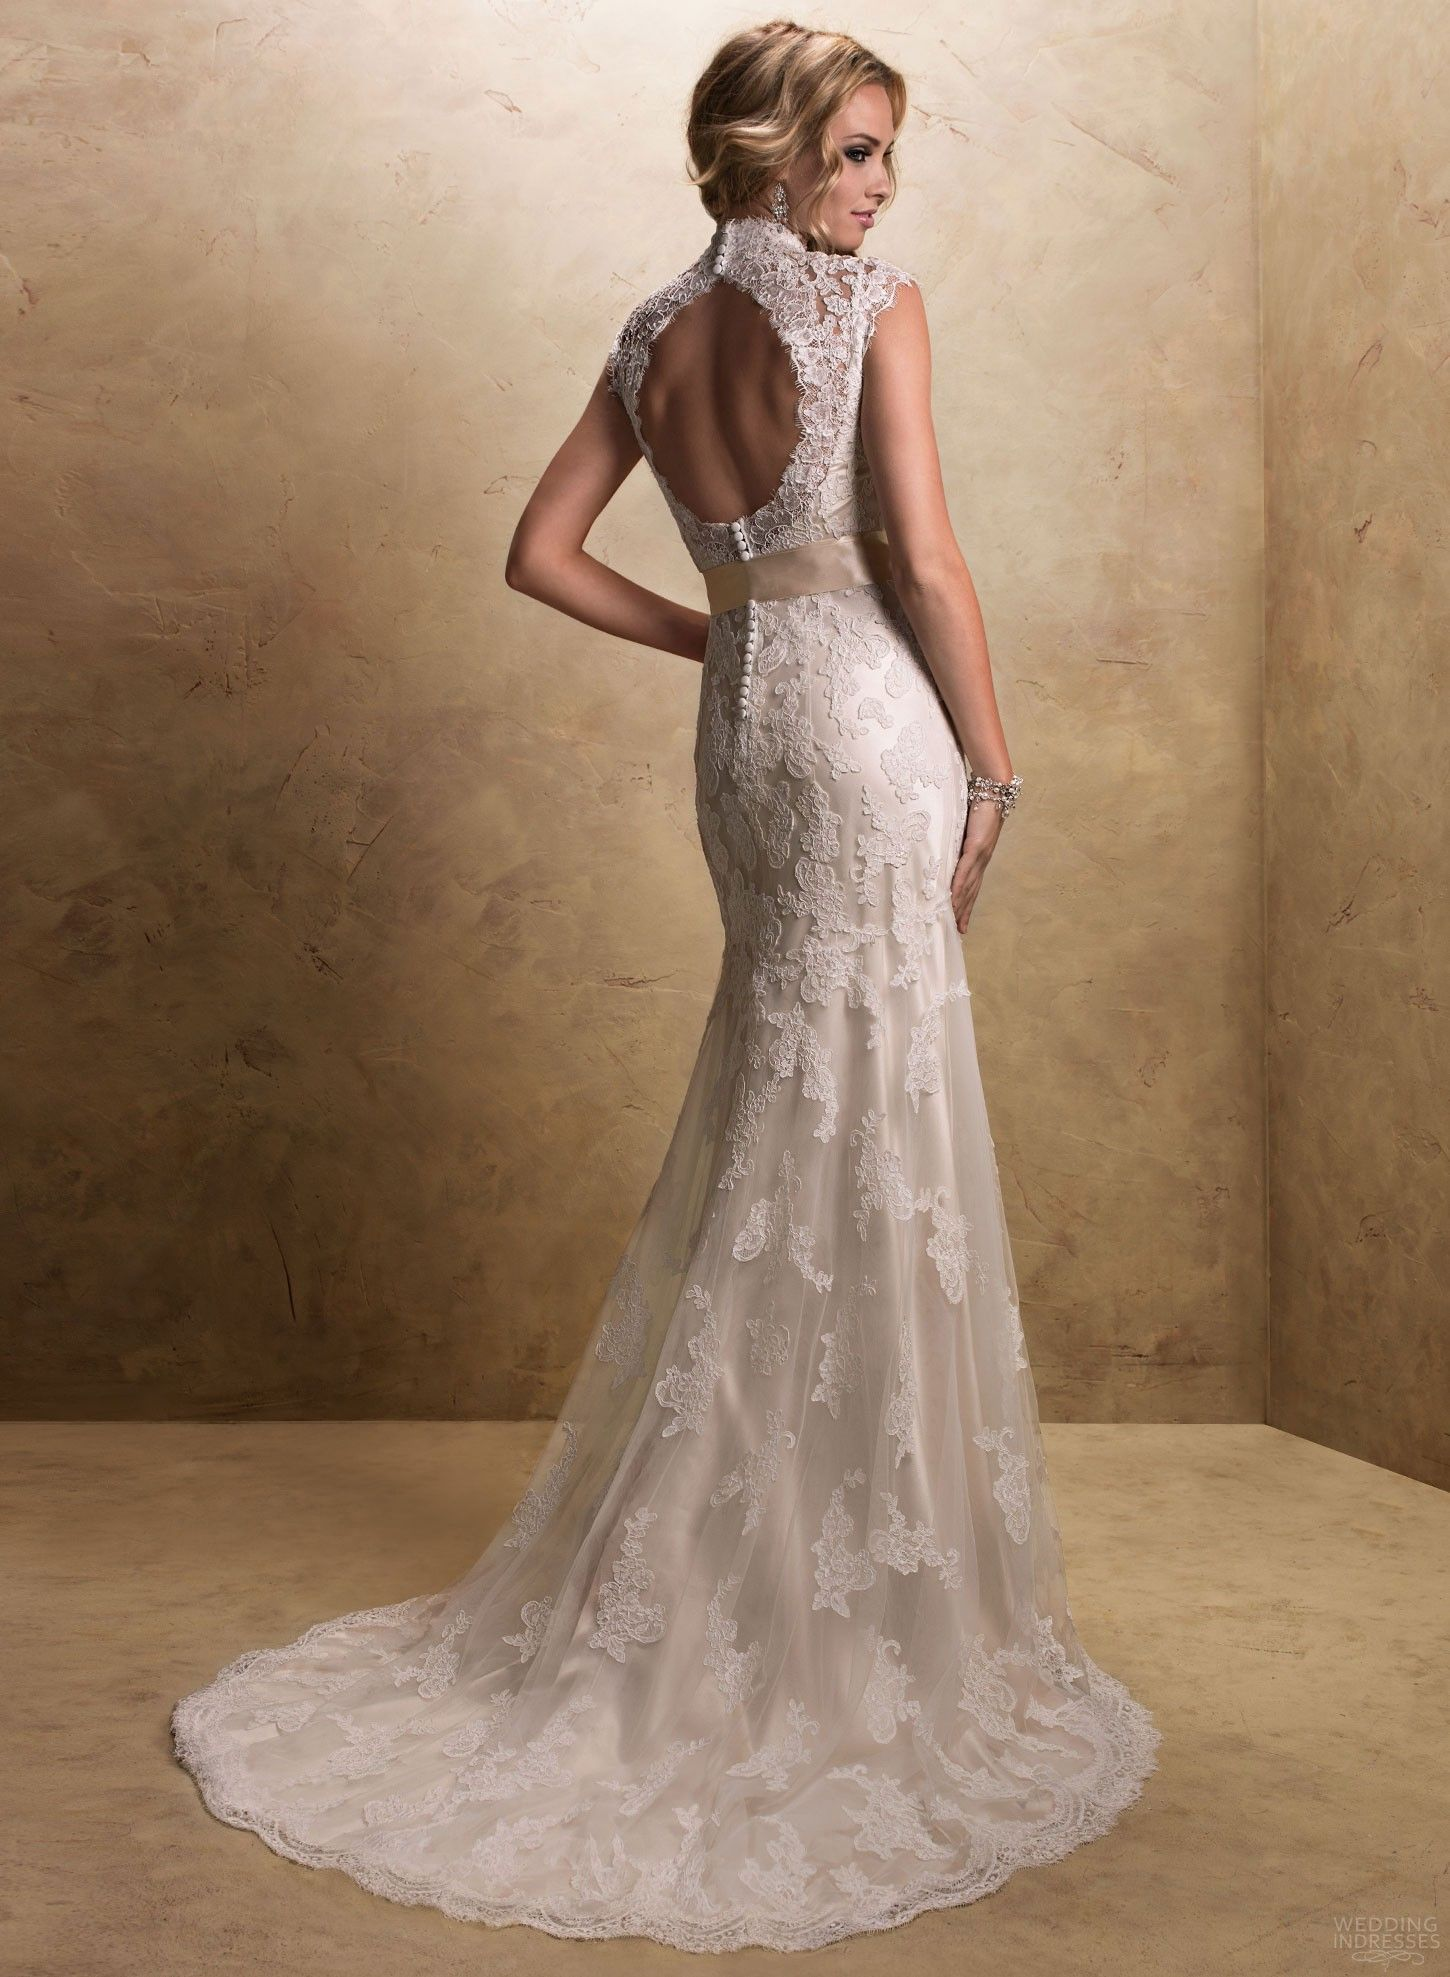 I'm completely obsessed with keyhole backs and lace